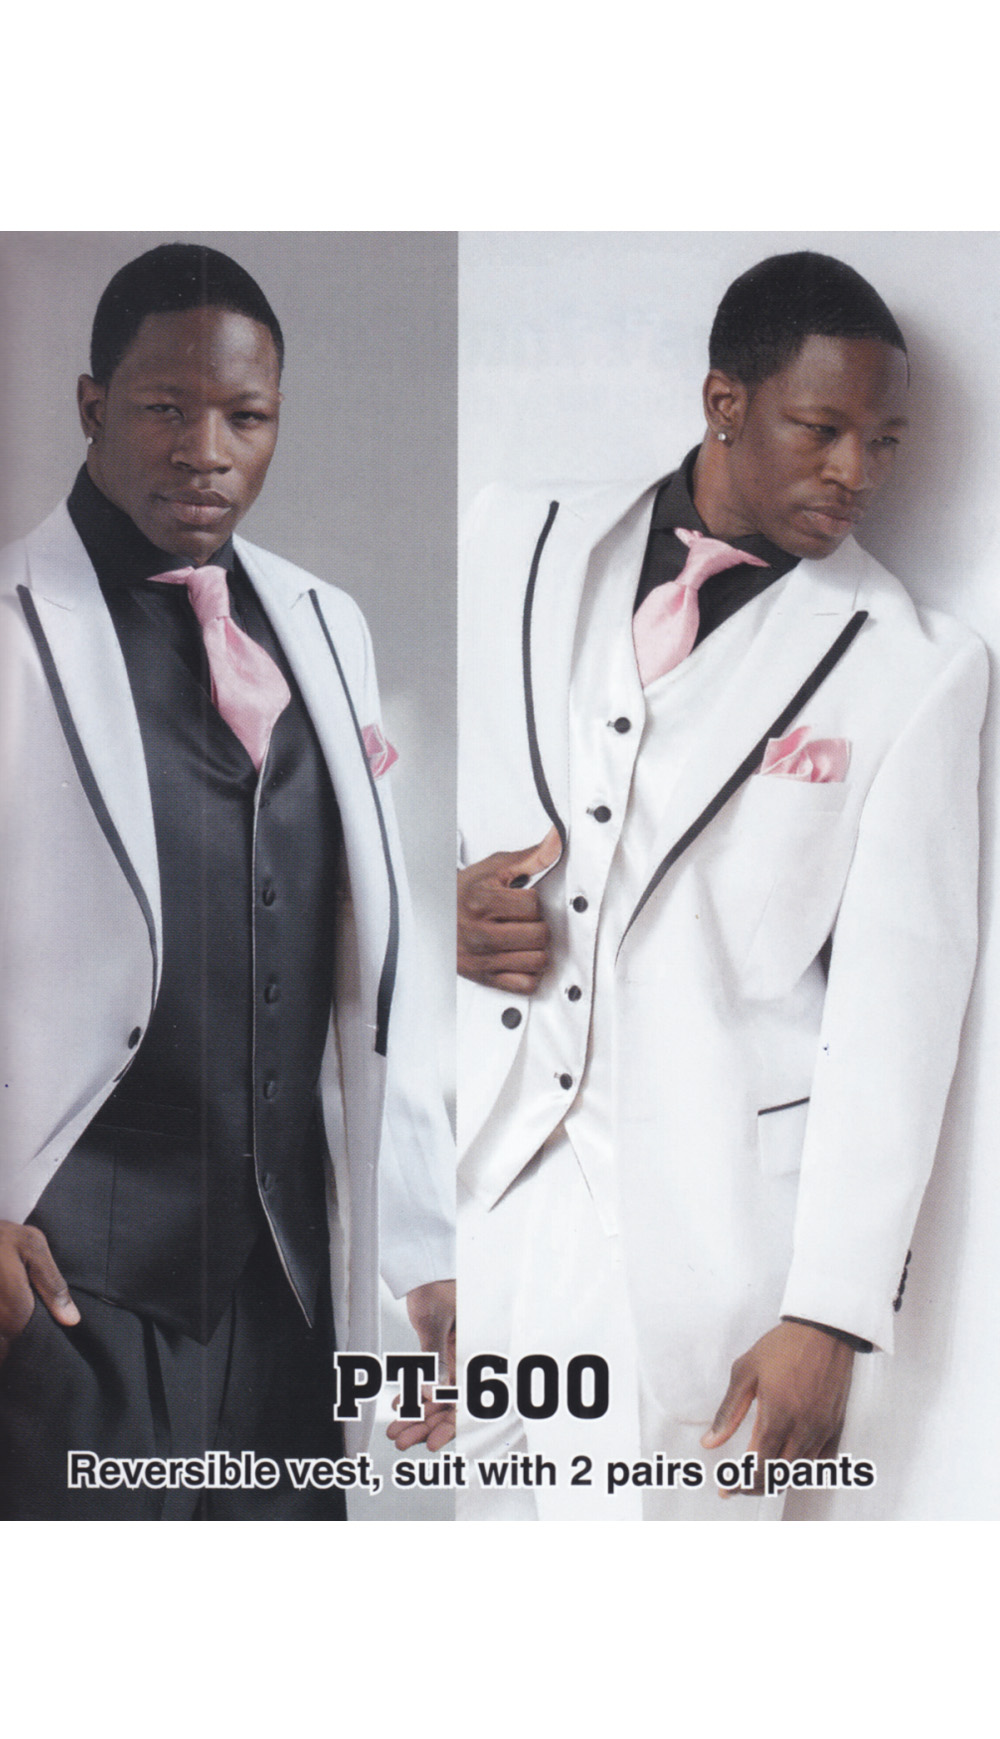 High Fashion Men's Tuxedo PT-600